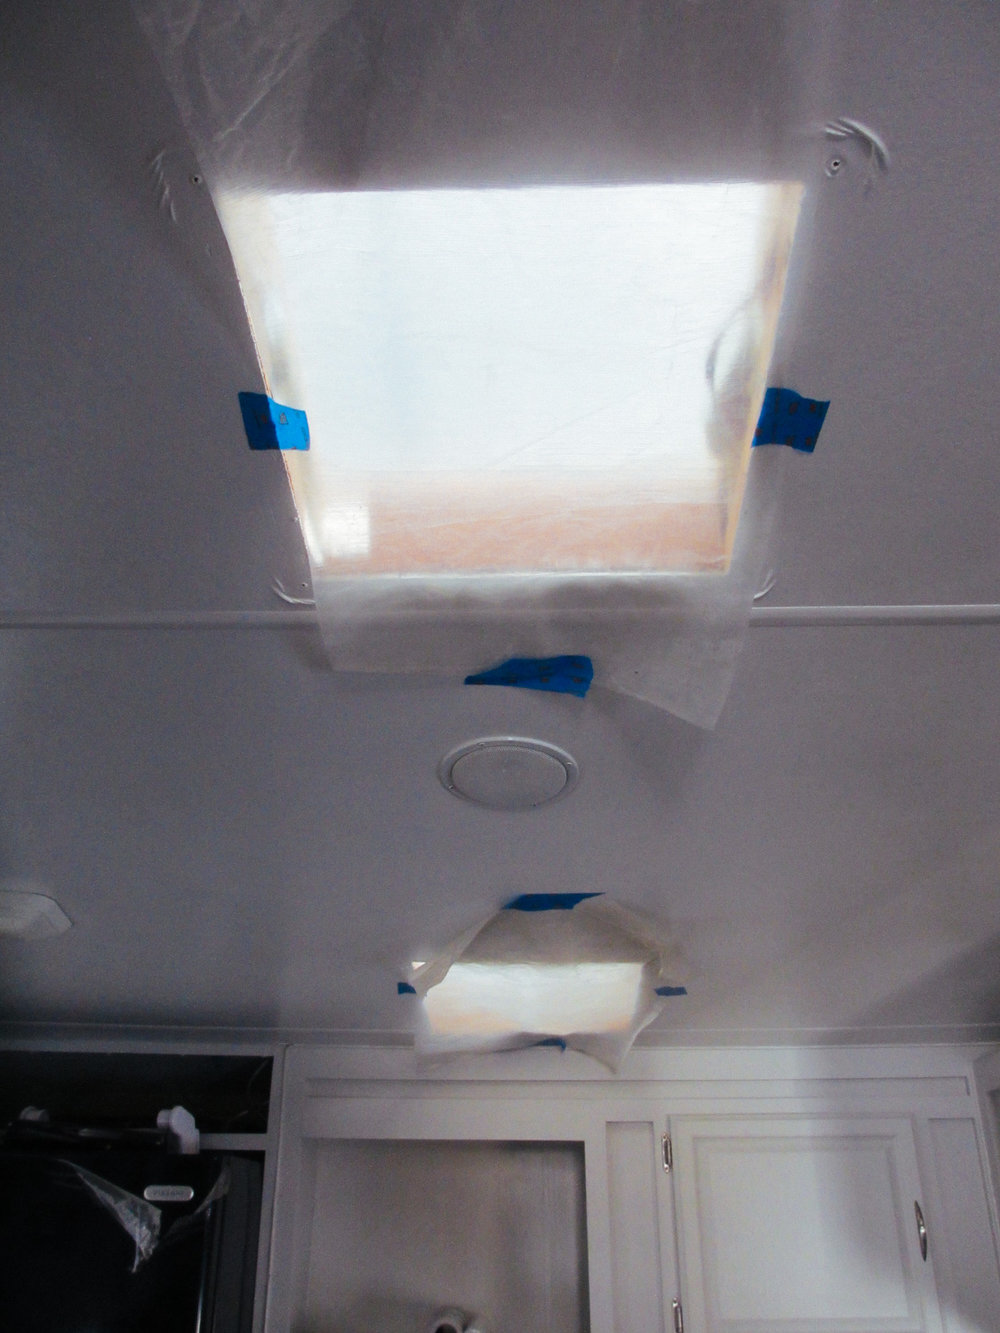 We covered the inside of the vent holes with plastic to prevent roof adhesive dripping into the rig.